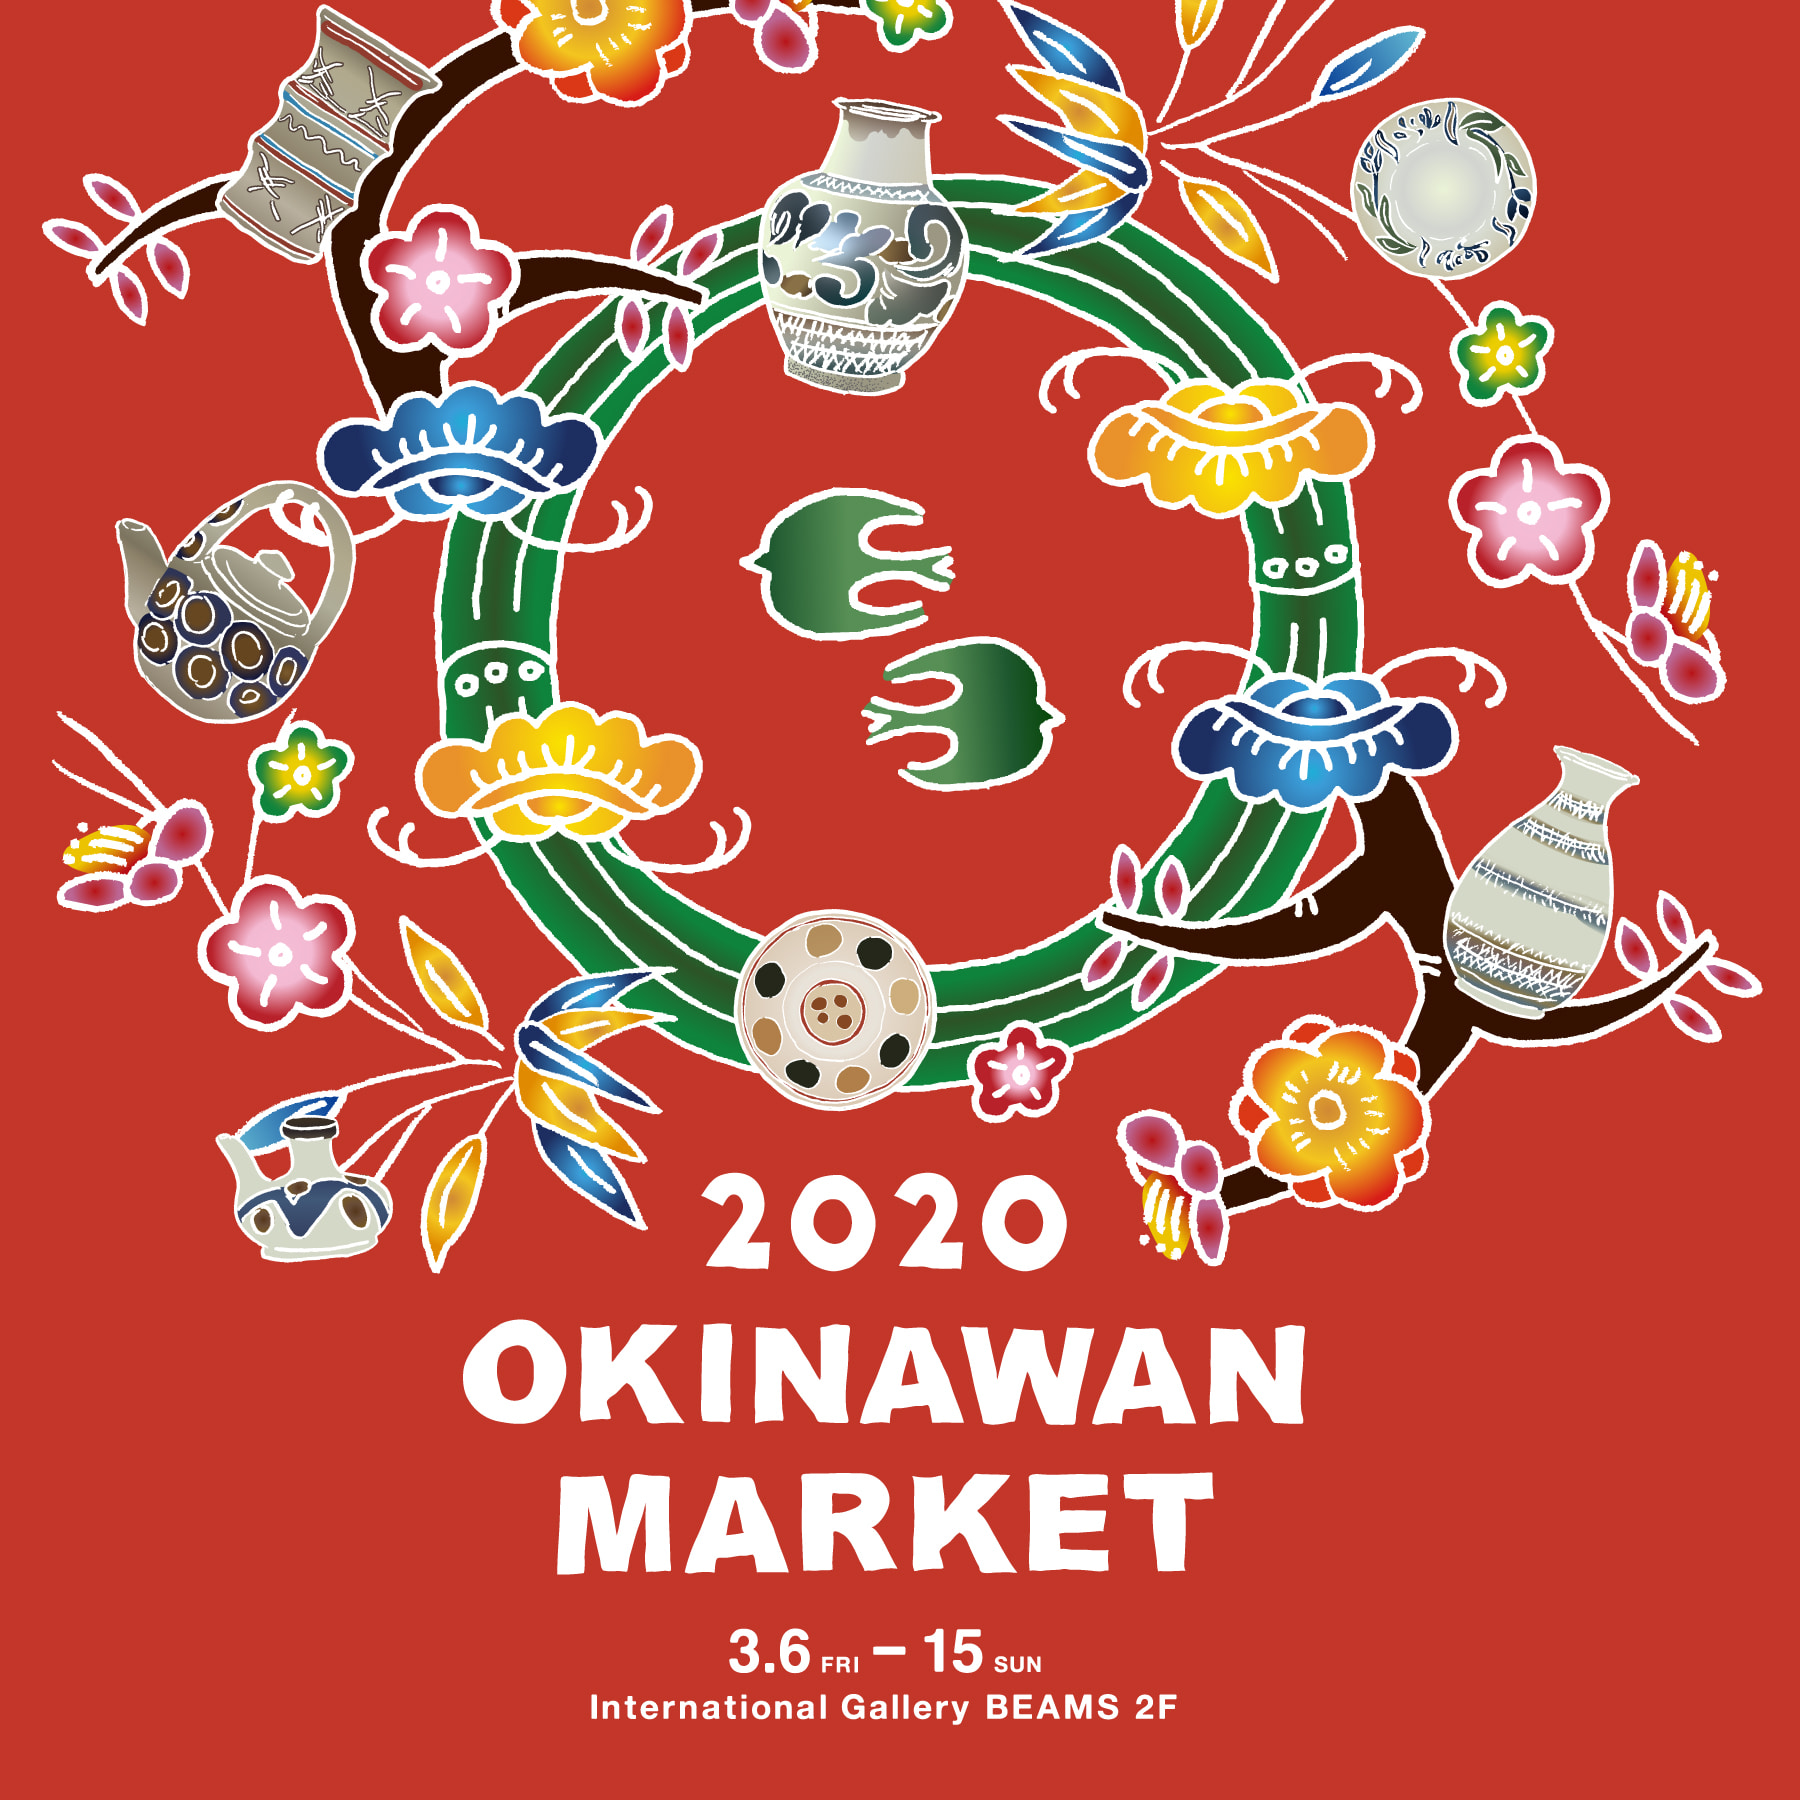 A collection of Okinawan items, 2020 OKINAWAN MARKET